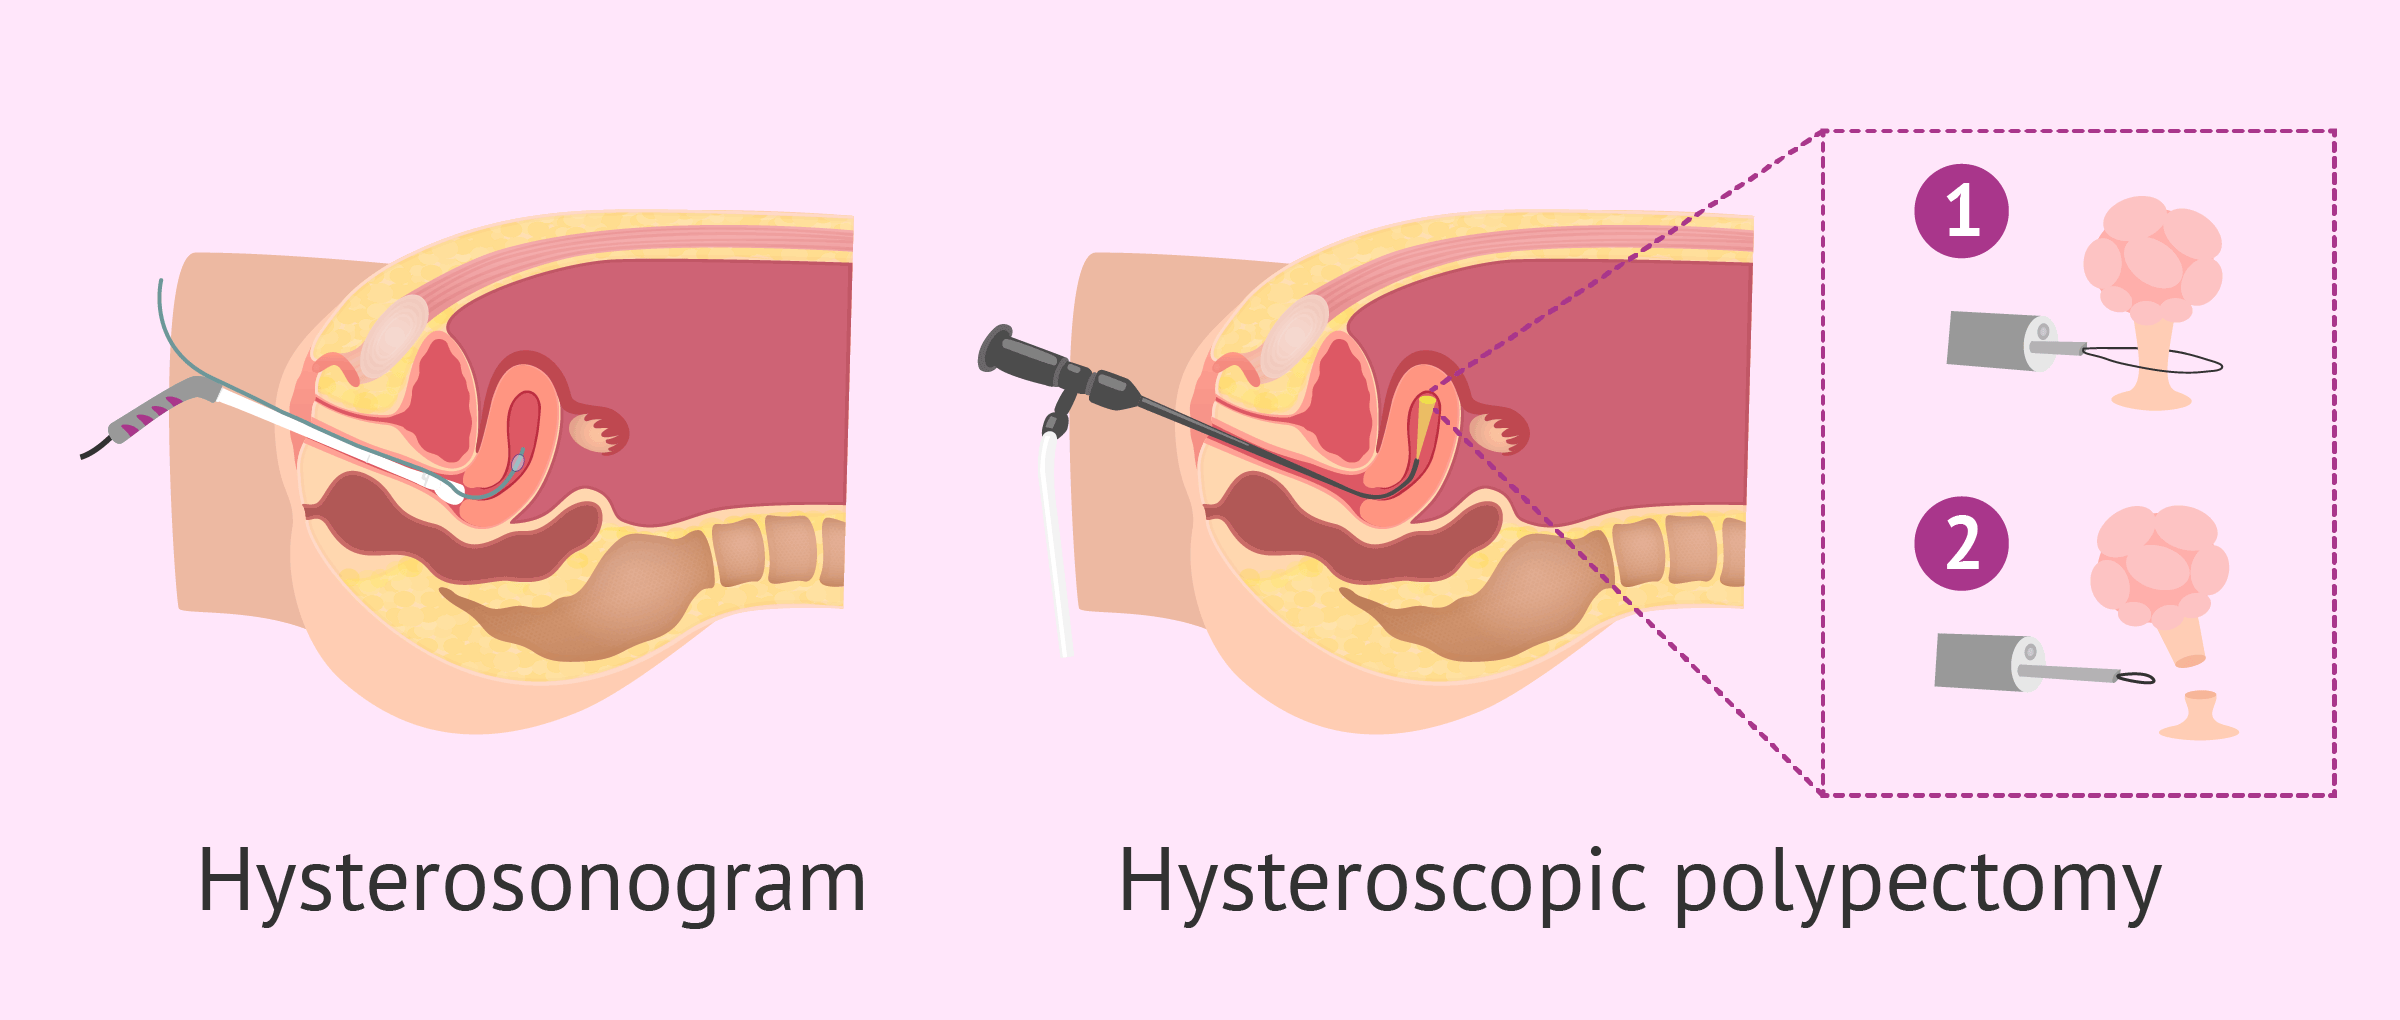 What are the dangerous polyps in the uterus